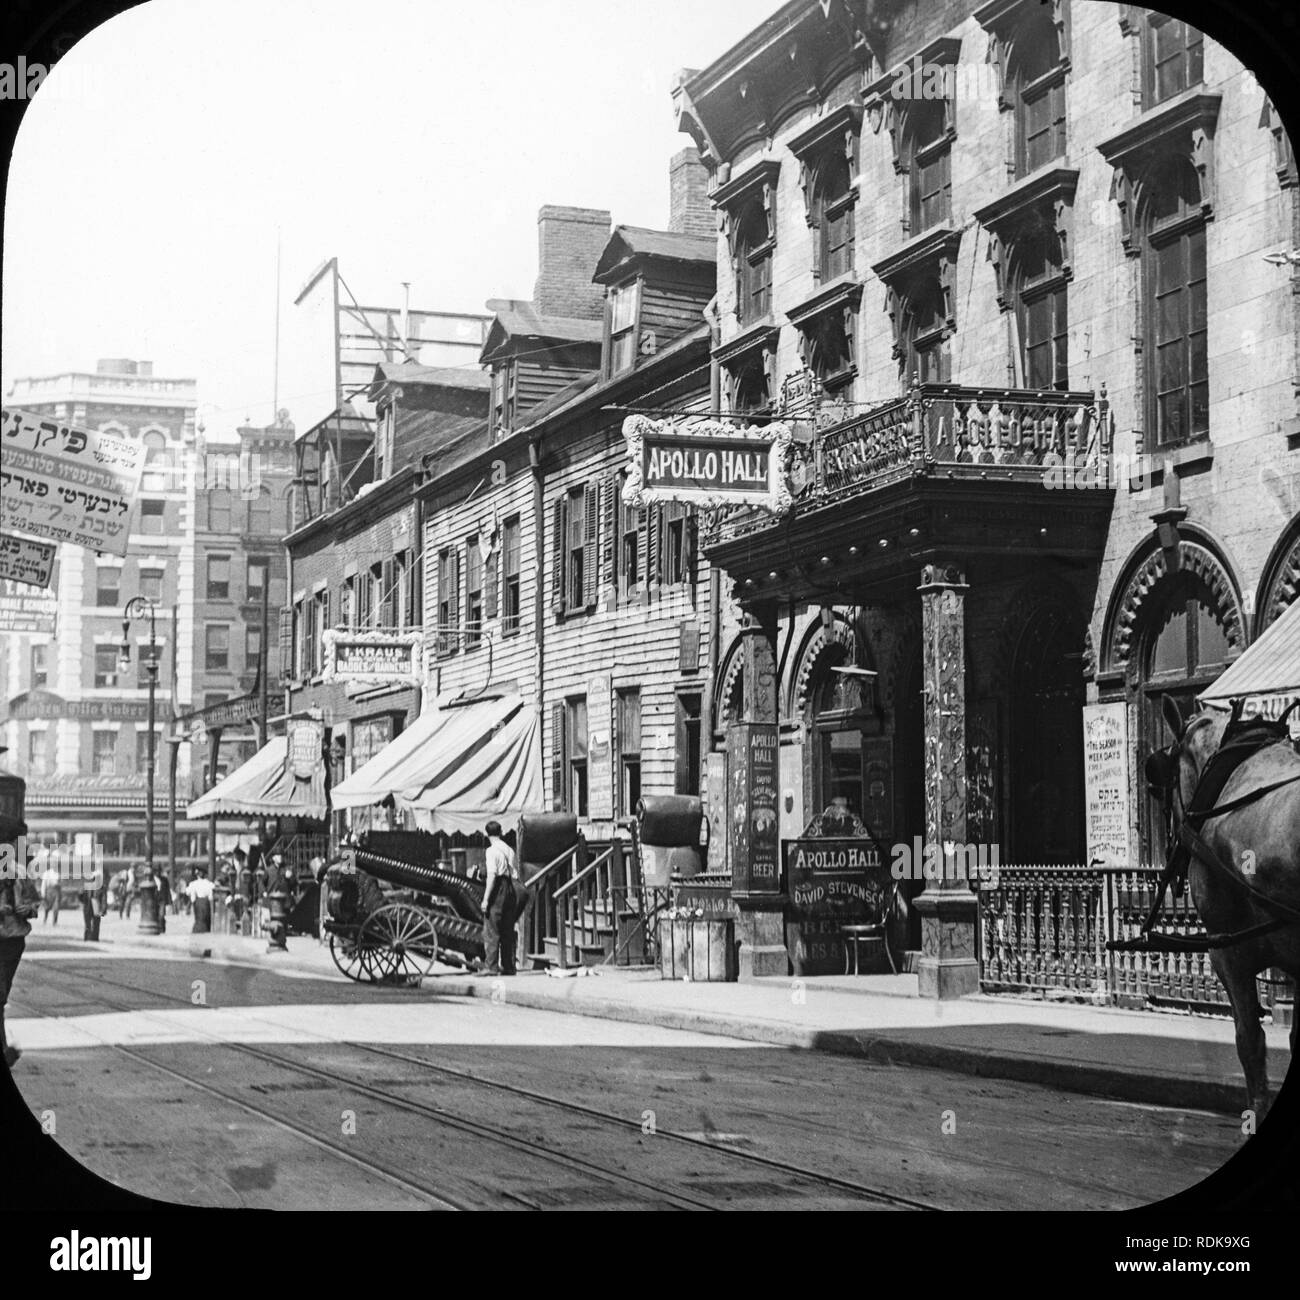 Late Victorian view of Clinton Street in the Jewish Quarter in New York City. The Apollo Hall Theatre on the right. - Stock Image